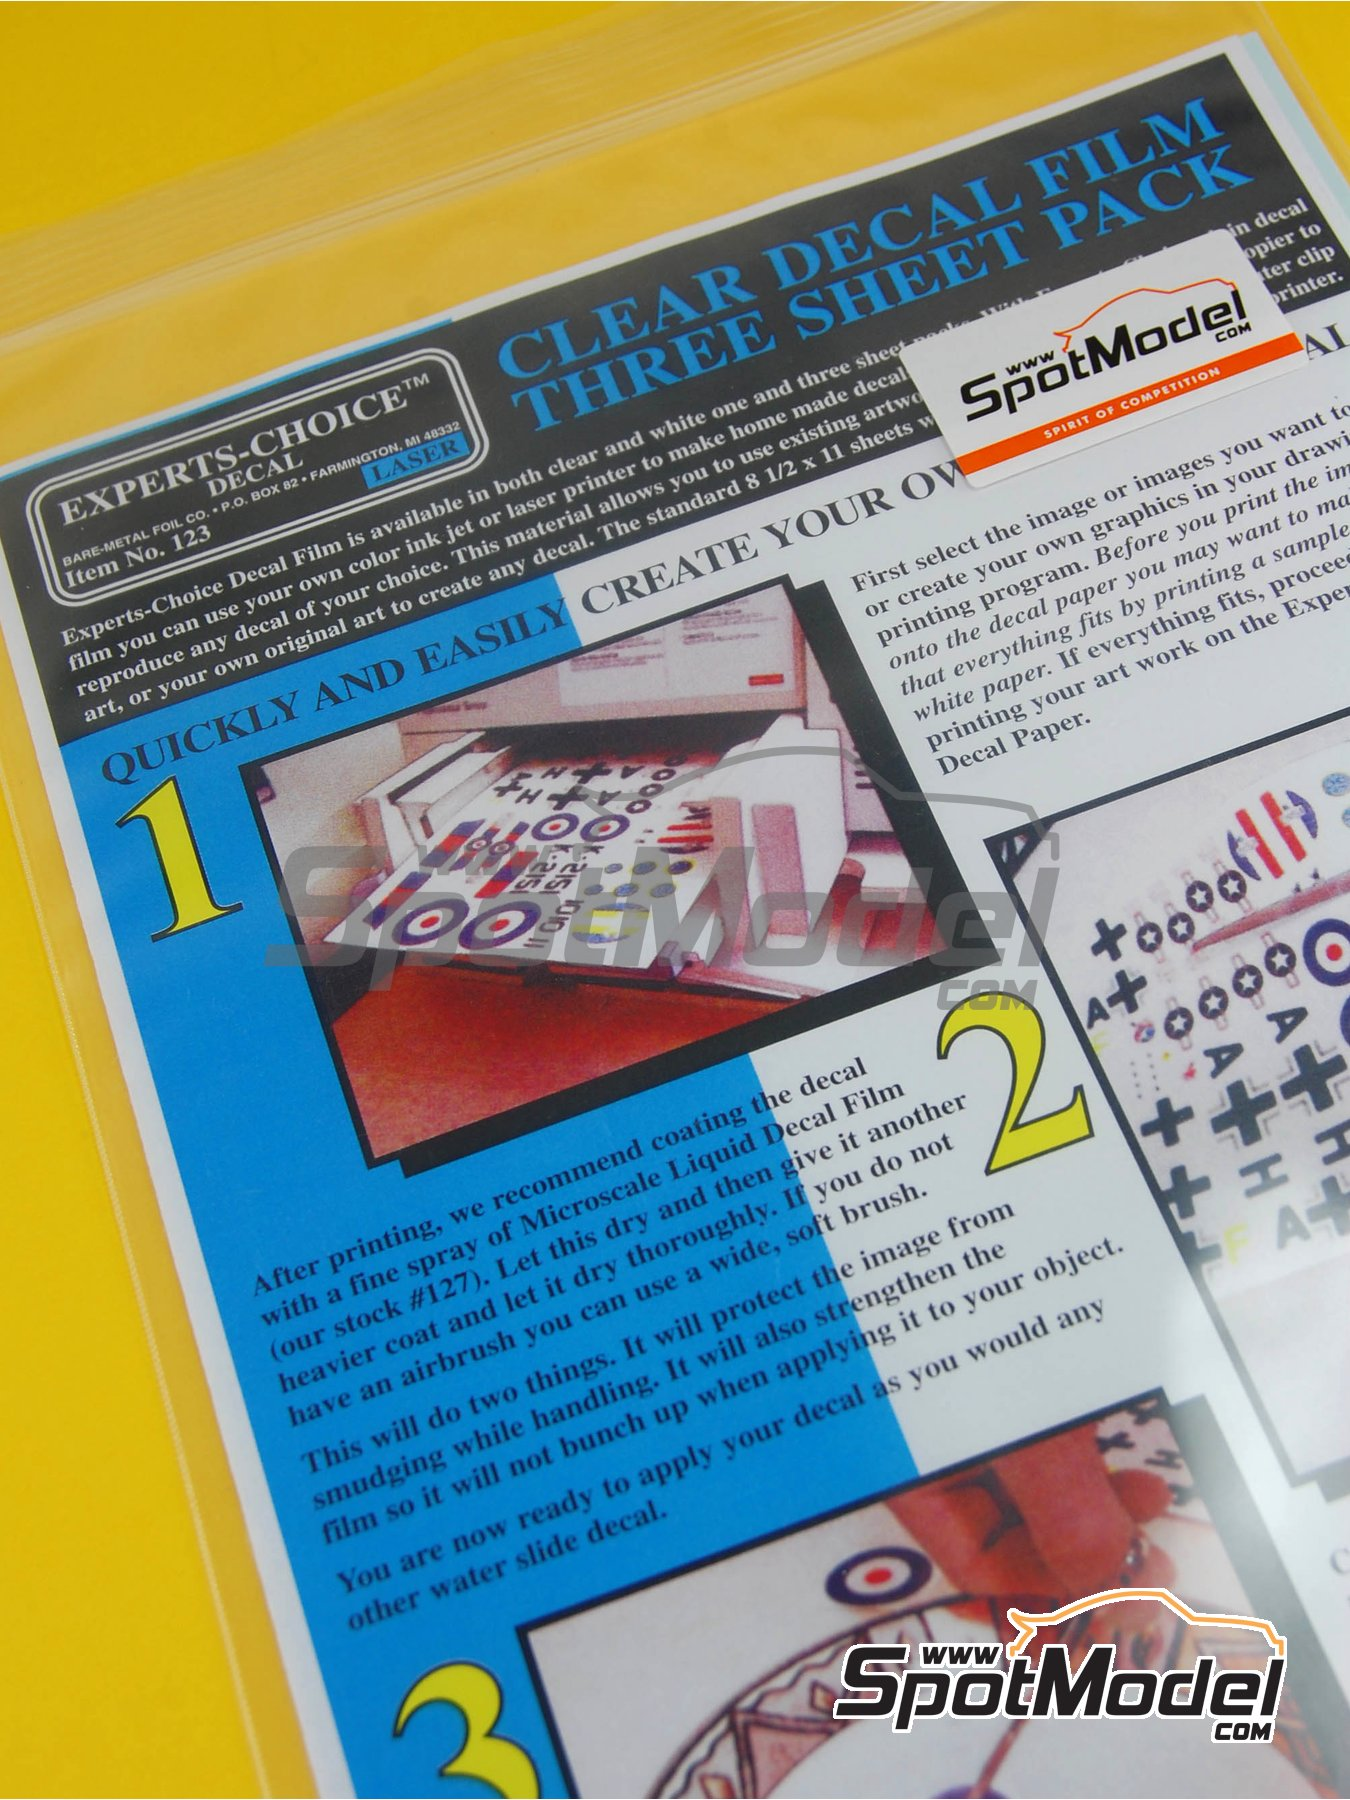 Clear laser decal film - 27x20 cm | Decals manufactured by Bare Metal Foil Co (ref.BMF-00123) image